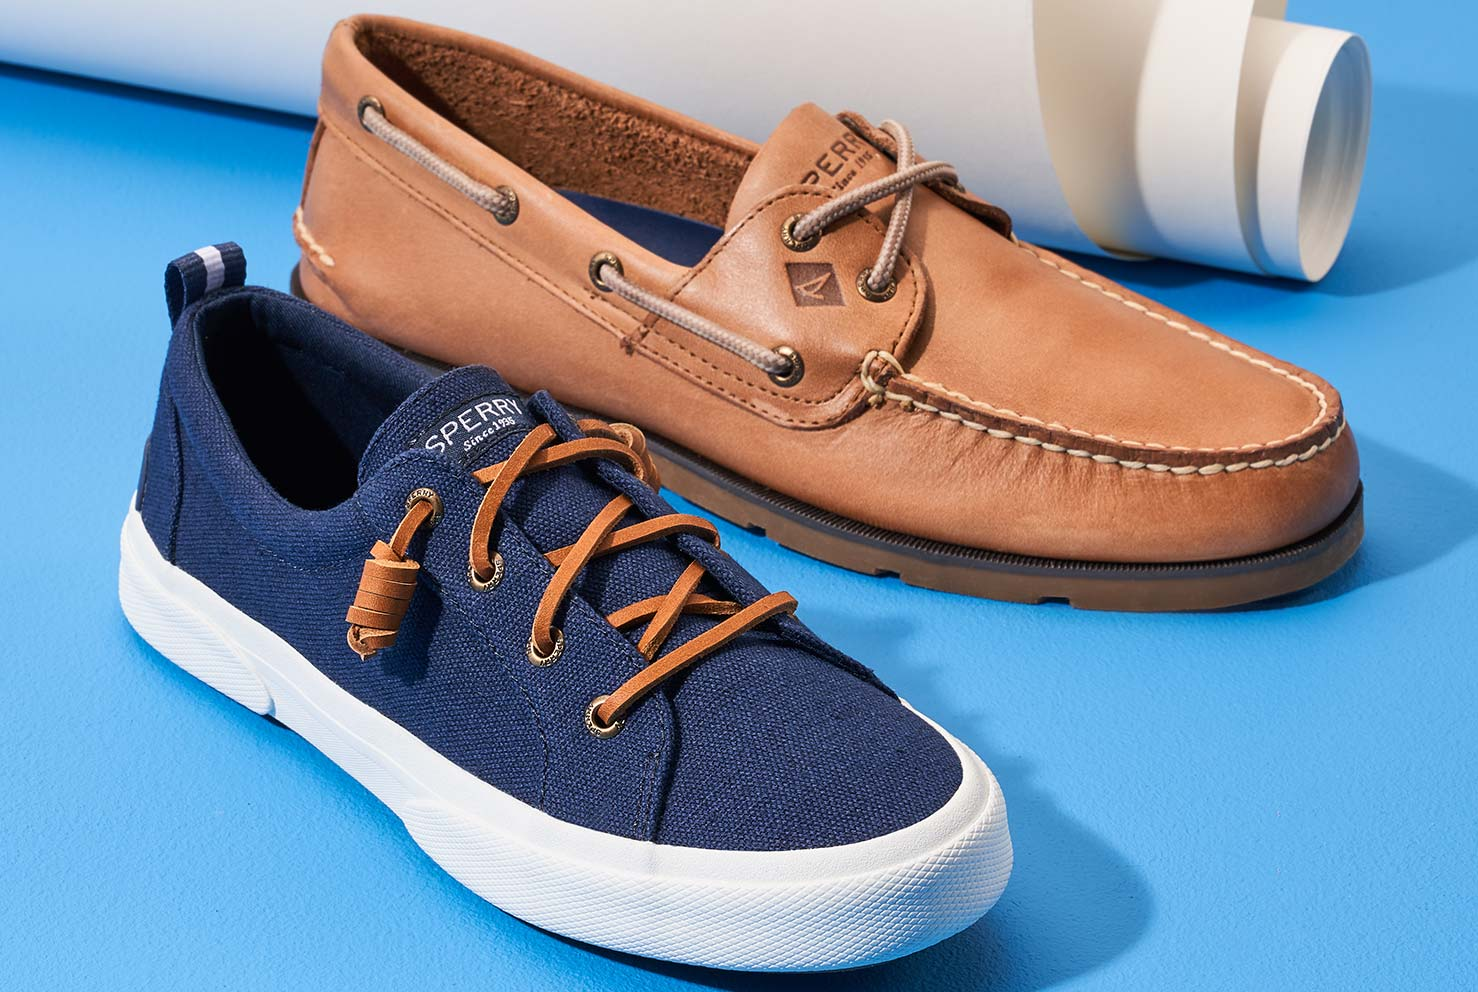 assorted sperry boat shoes